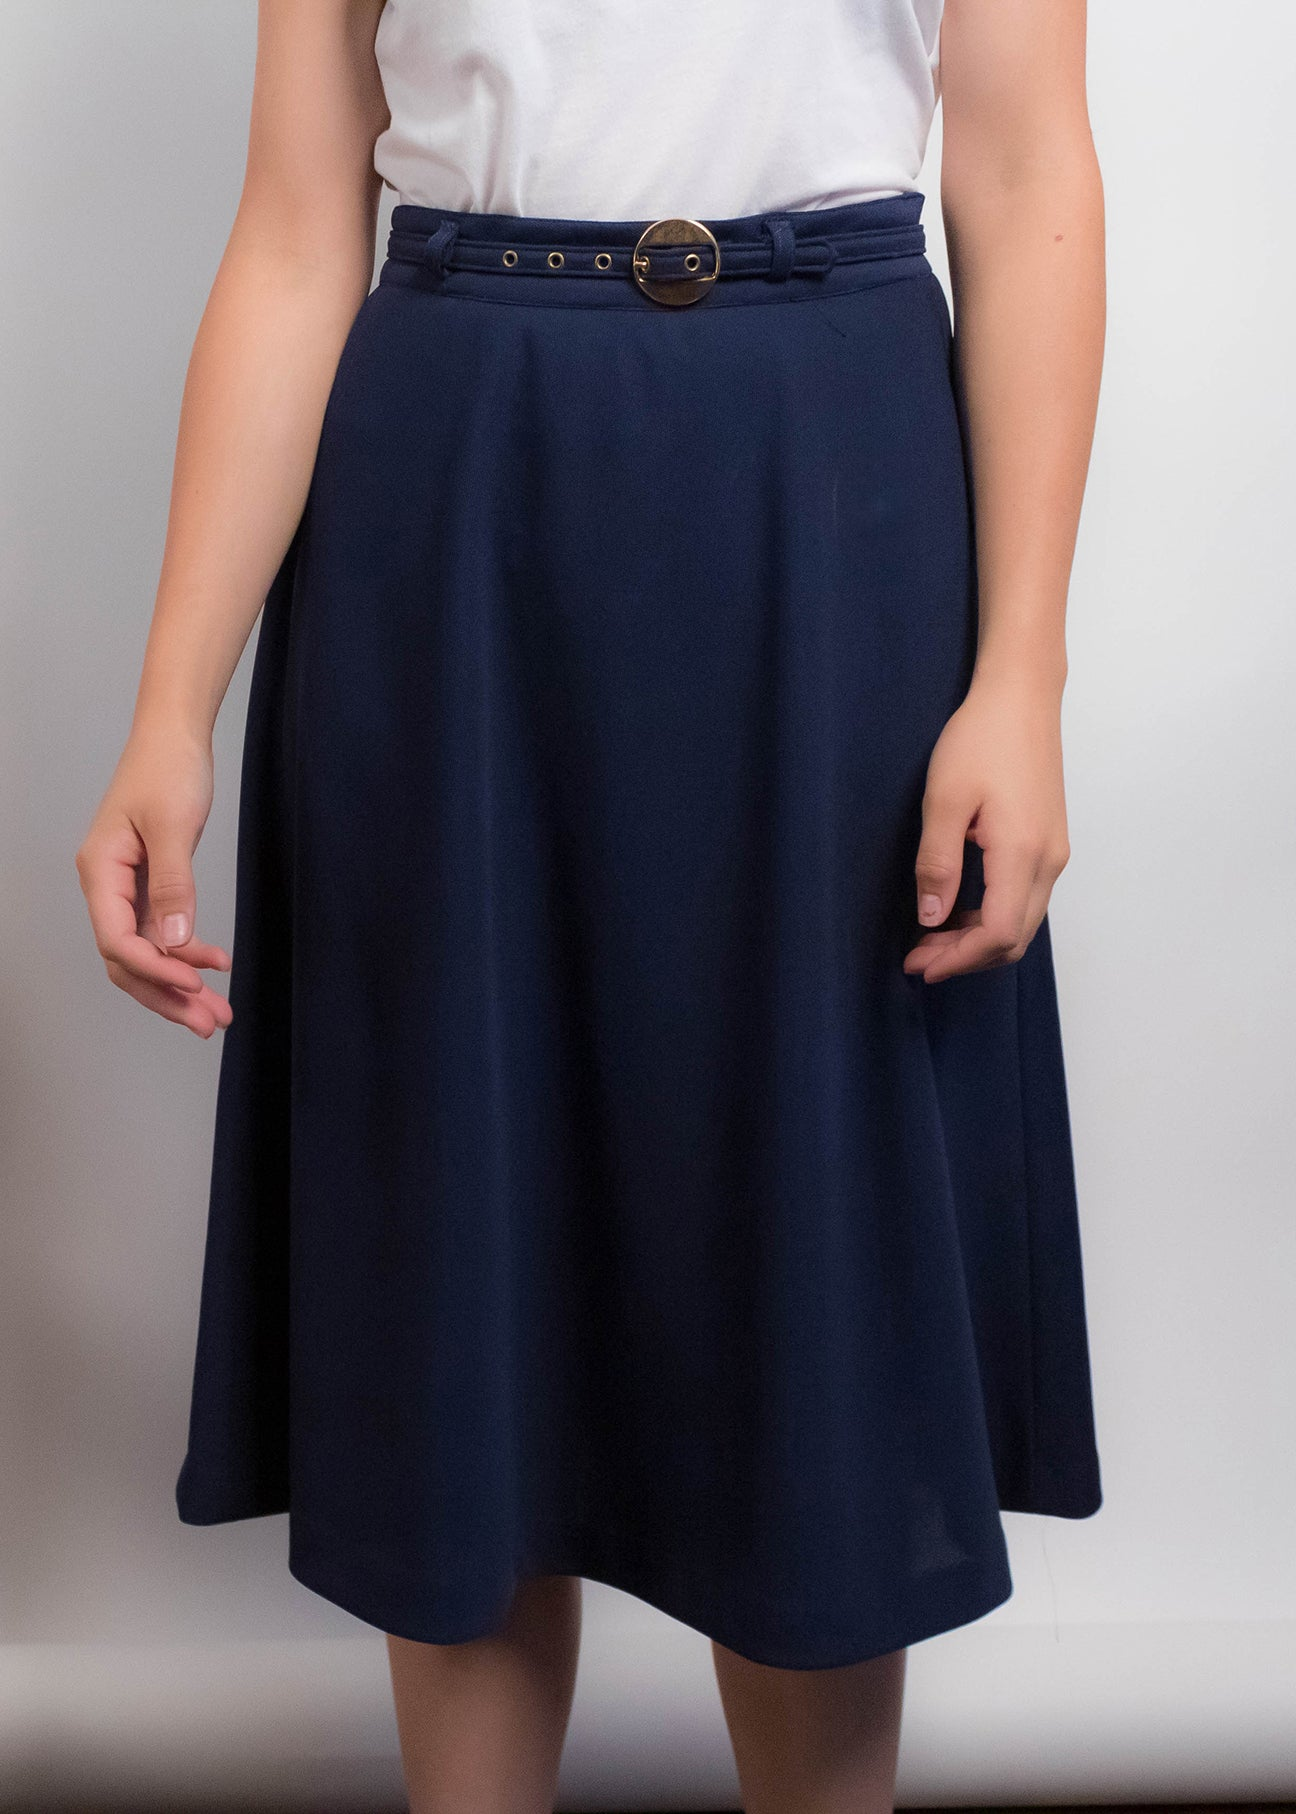 70s Navy A-line Knit Skirt